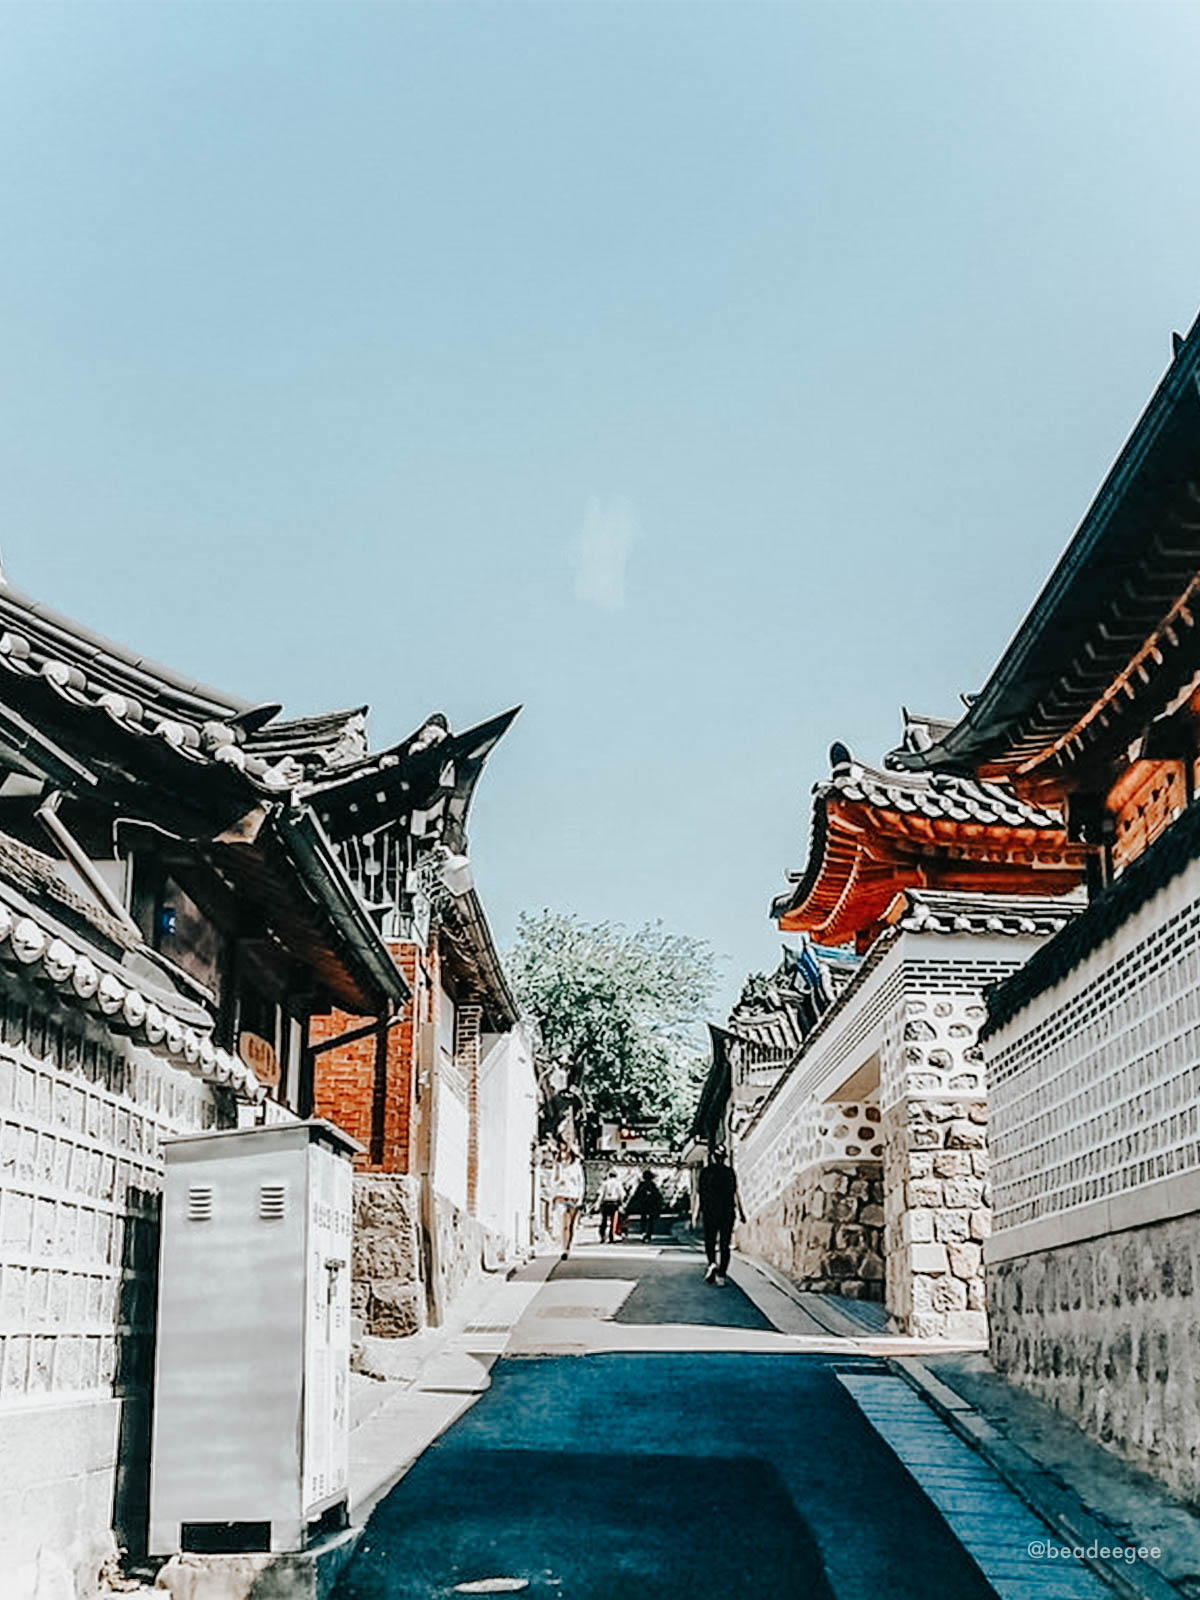 An empty alleyway in Bukchon Hanok Village in Seoul